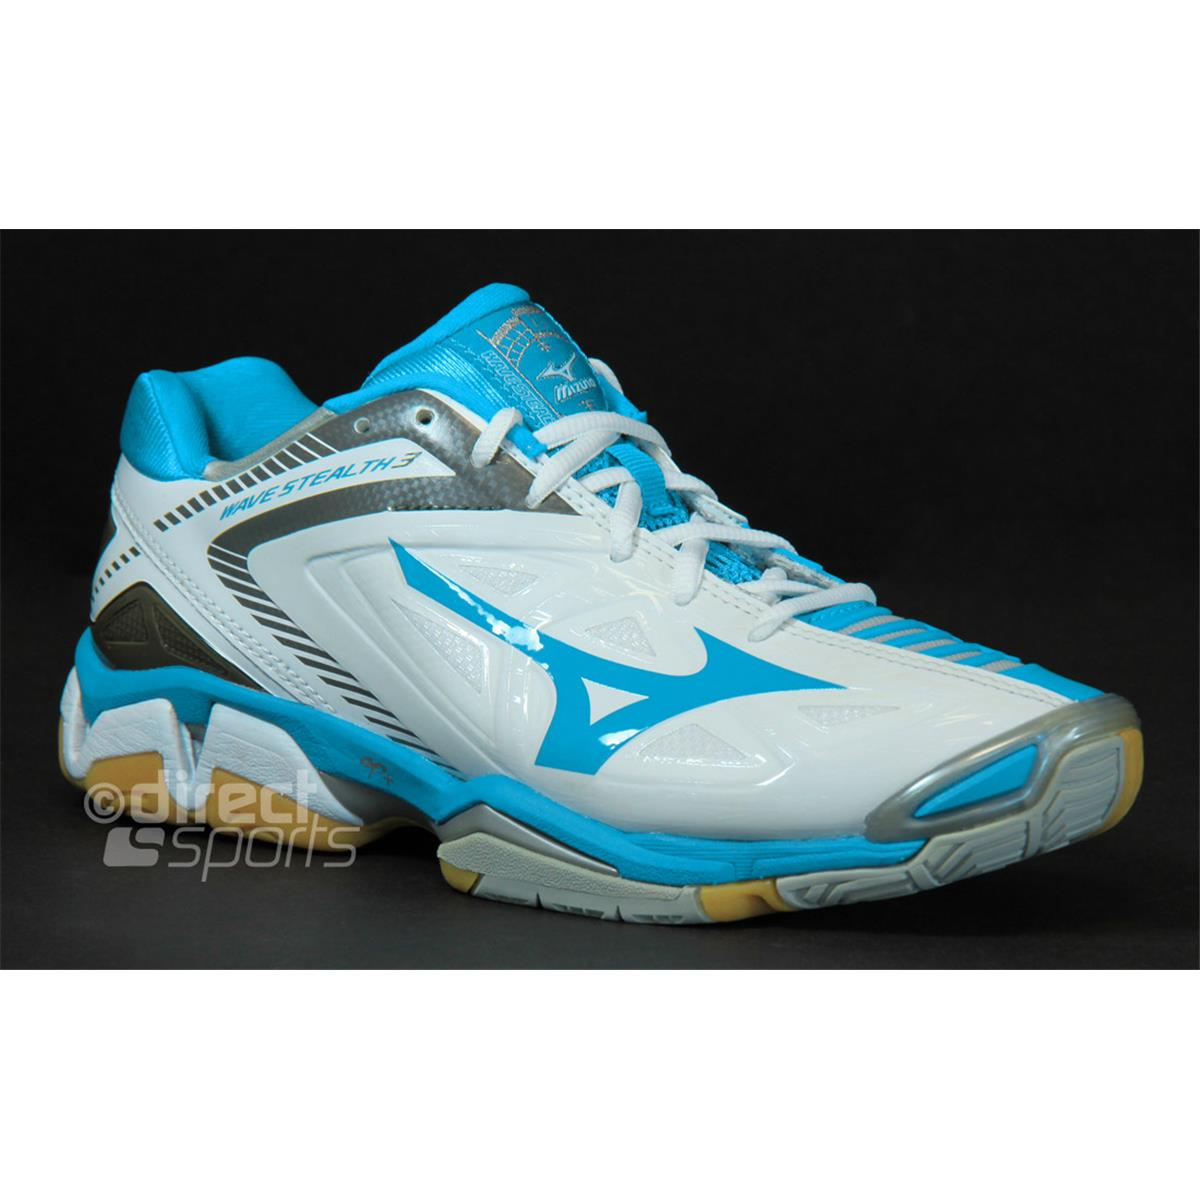 mizuno wave stealth 3 womens court shoes diva blue white. Black Bedroom Furniture Sets. Home Design Ideas